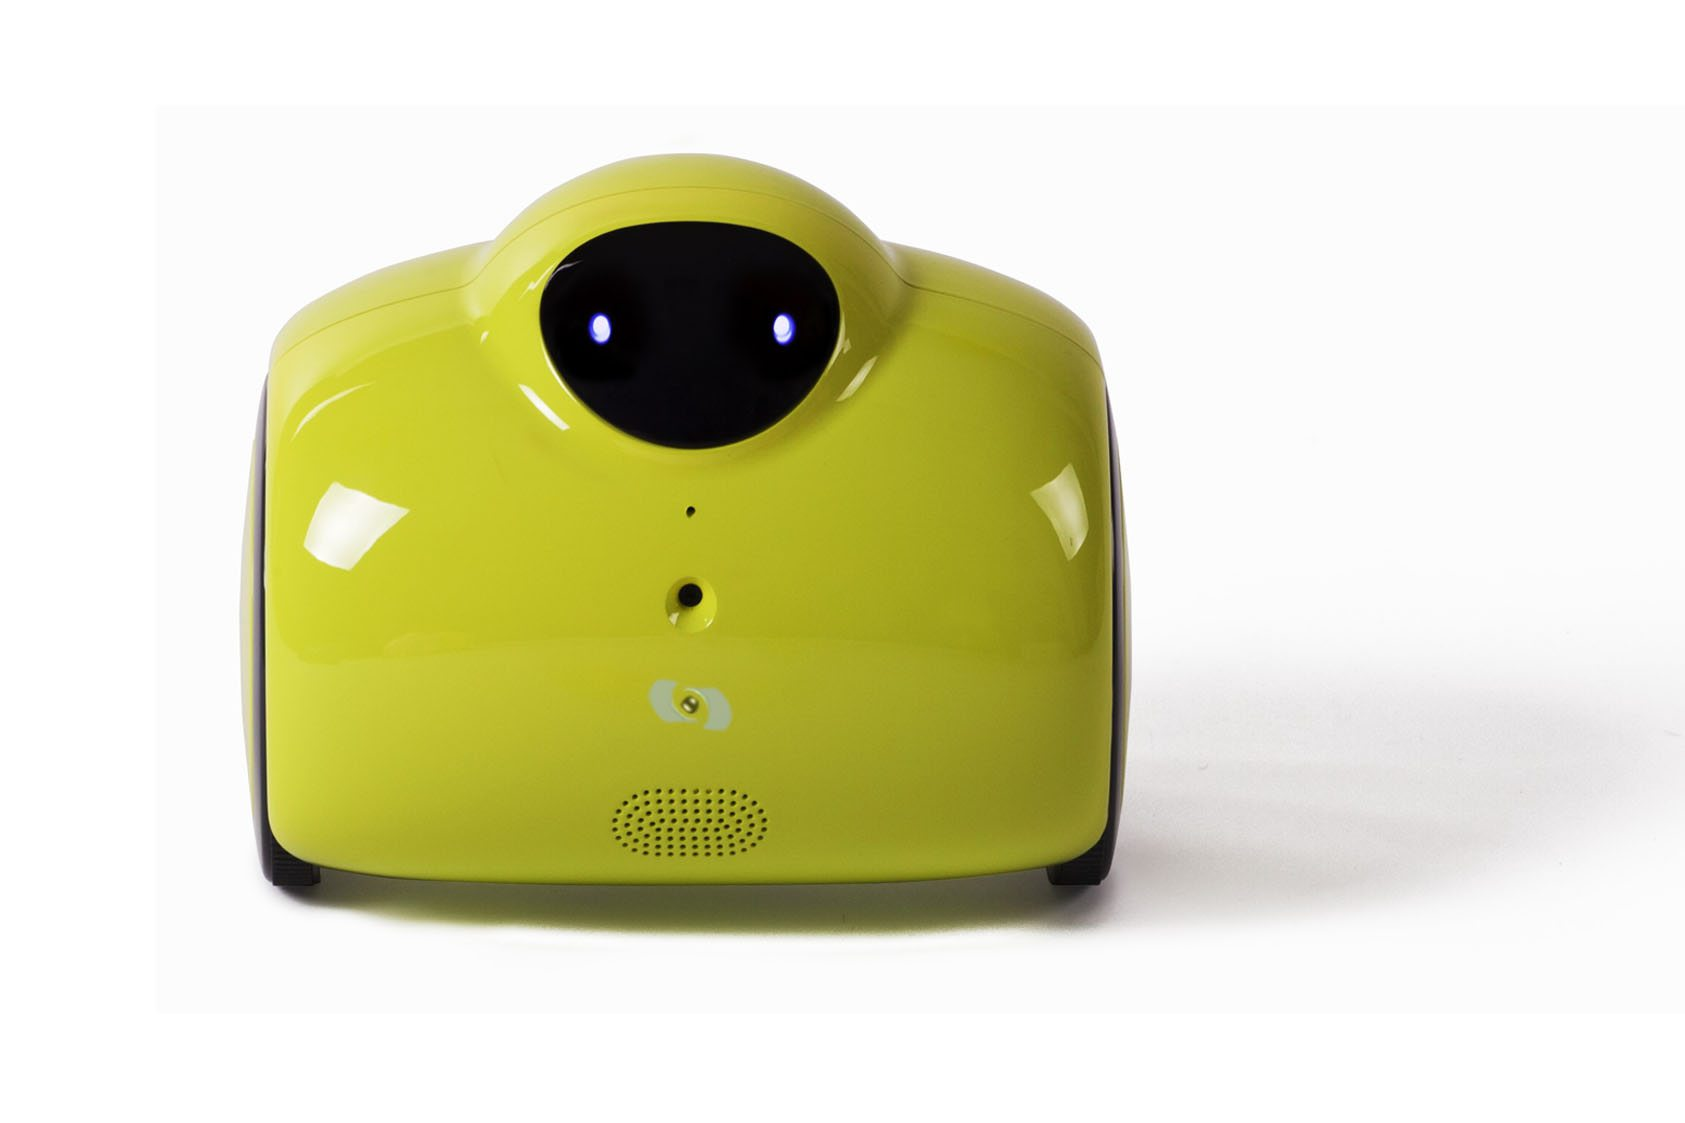 Snov Wifi Family Robot